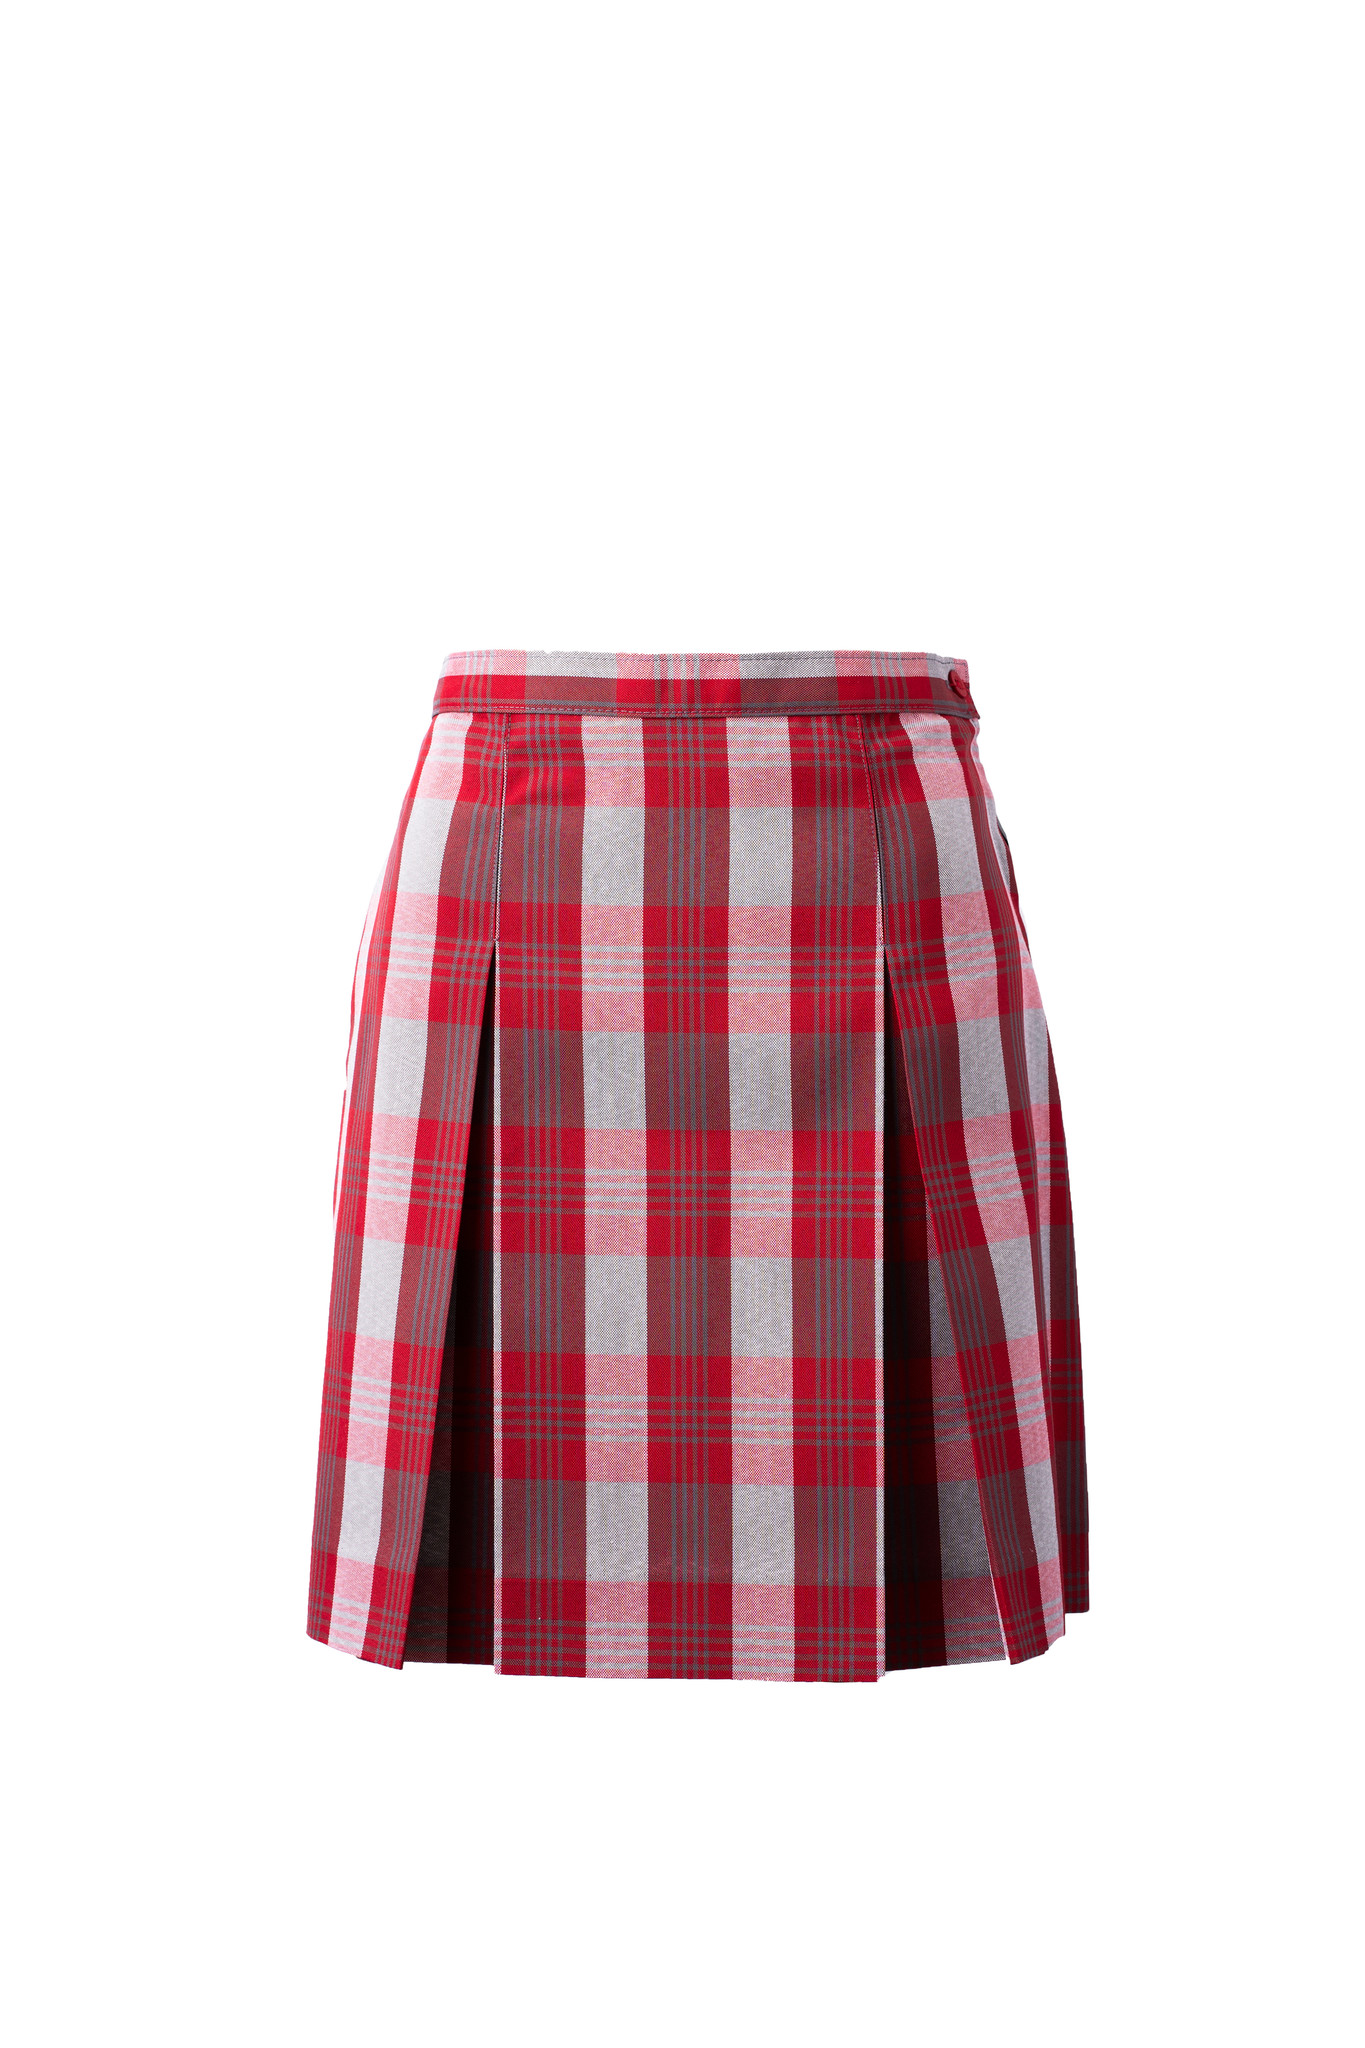 St. Thomas More Skirt